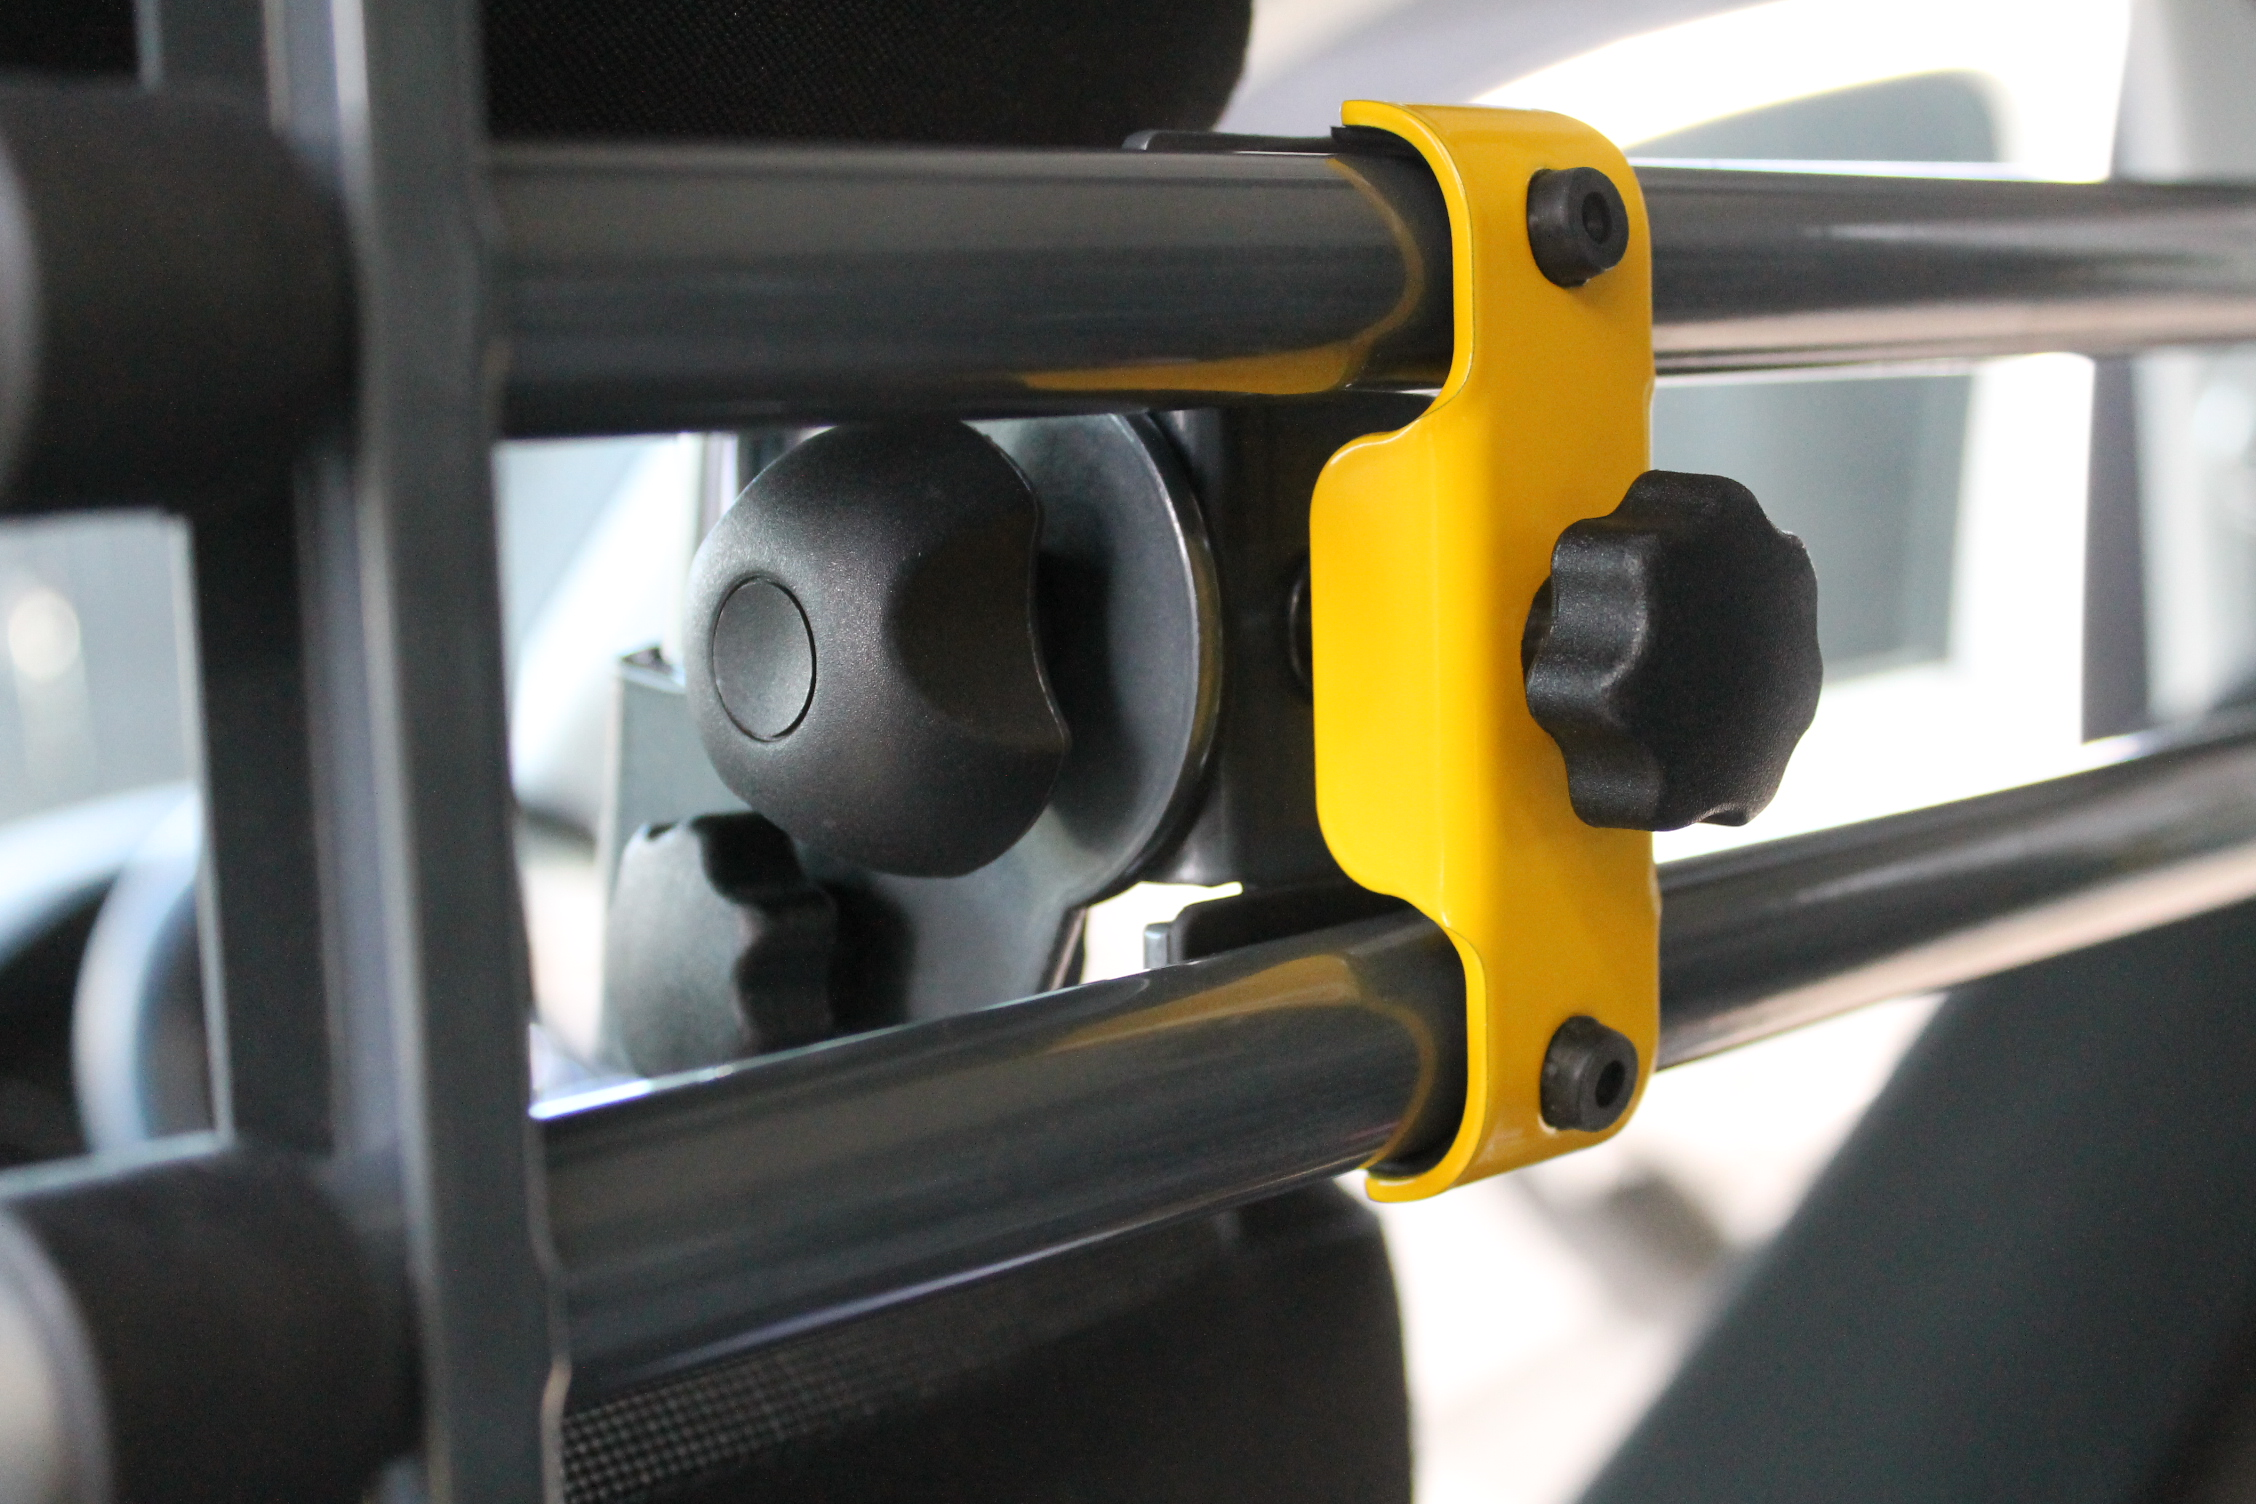 Yellow clamp attaches the bars to the attachment mechanism.